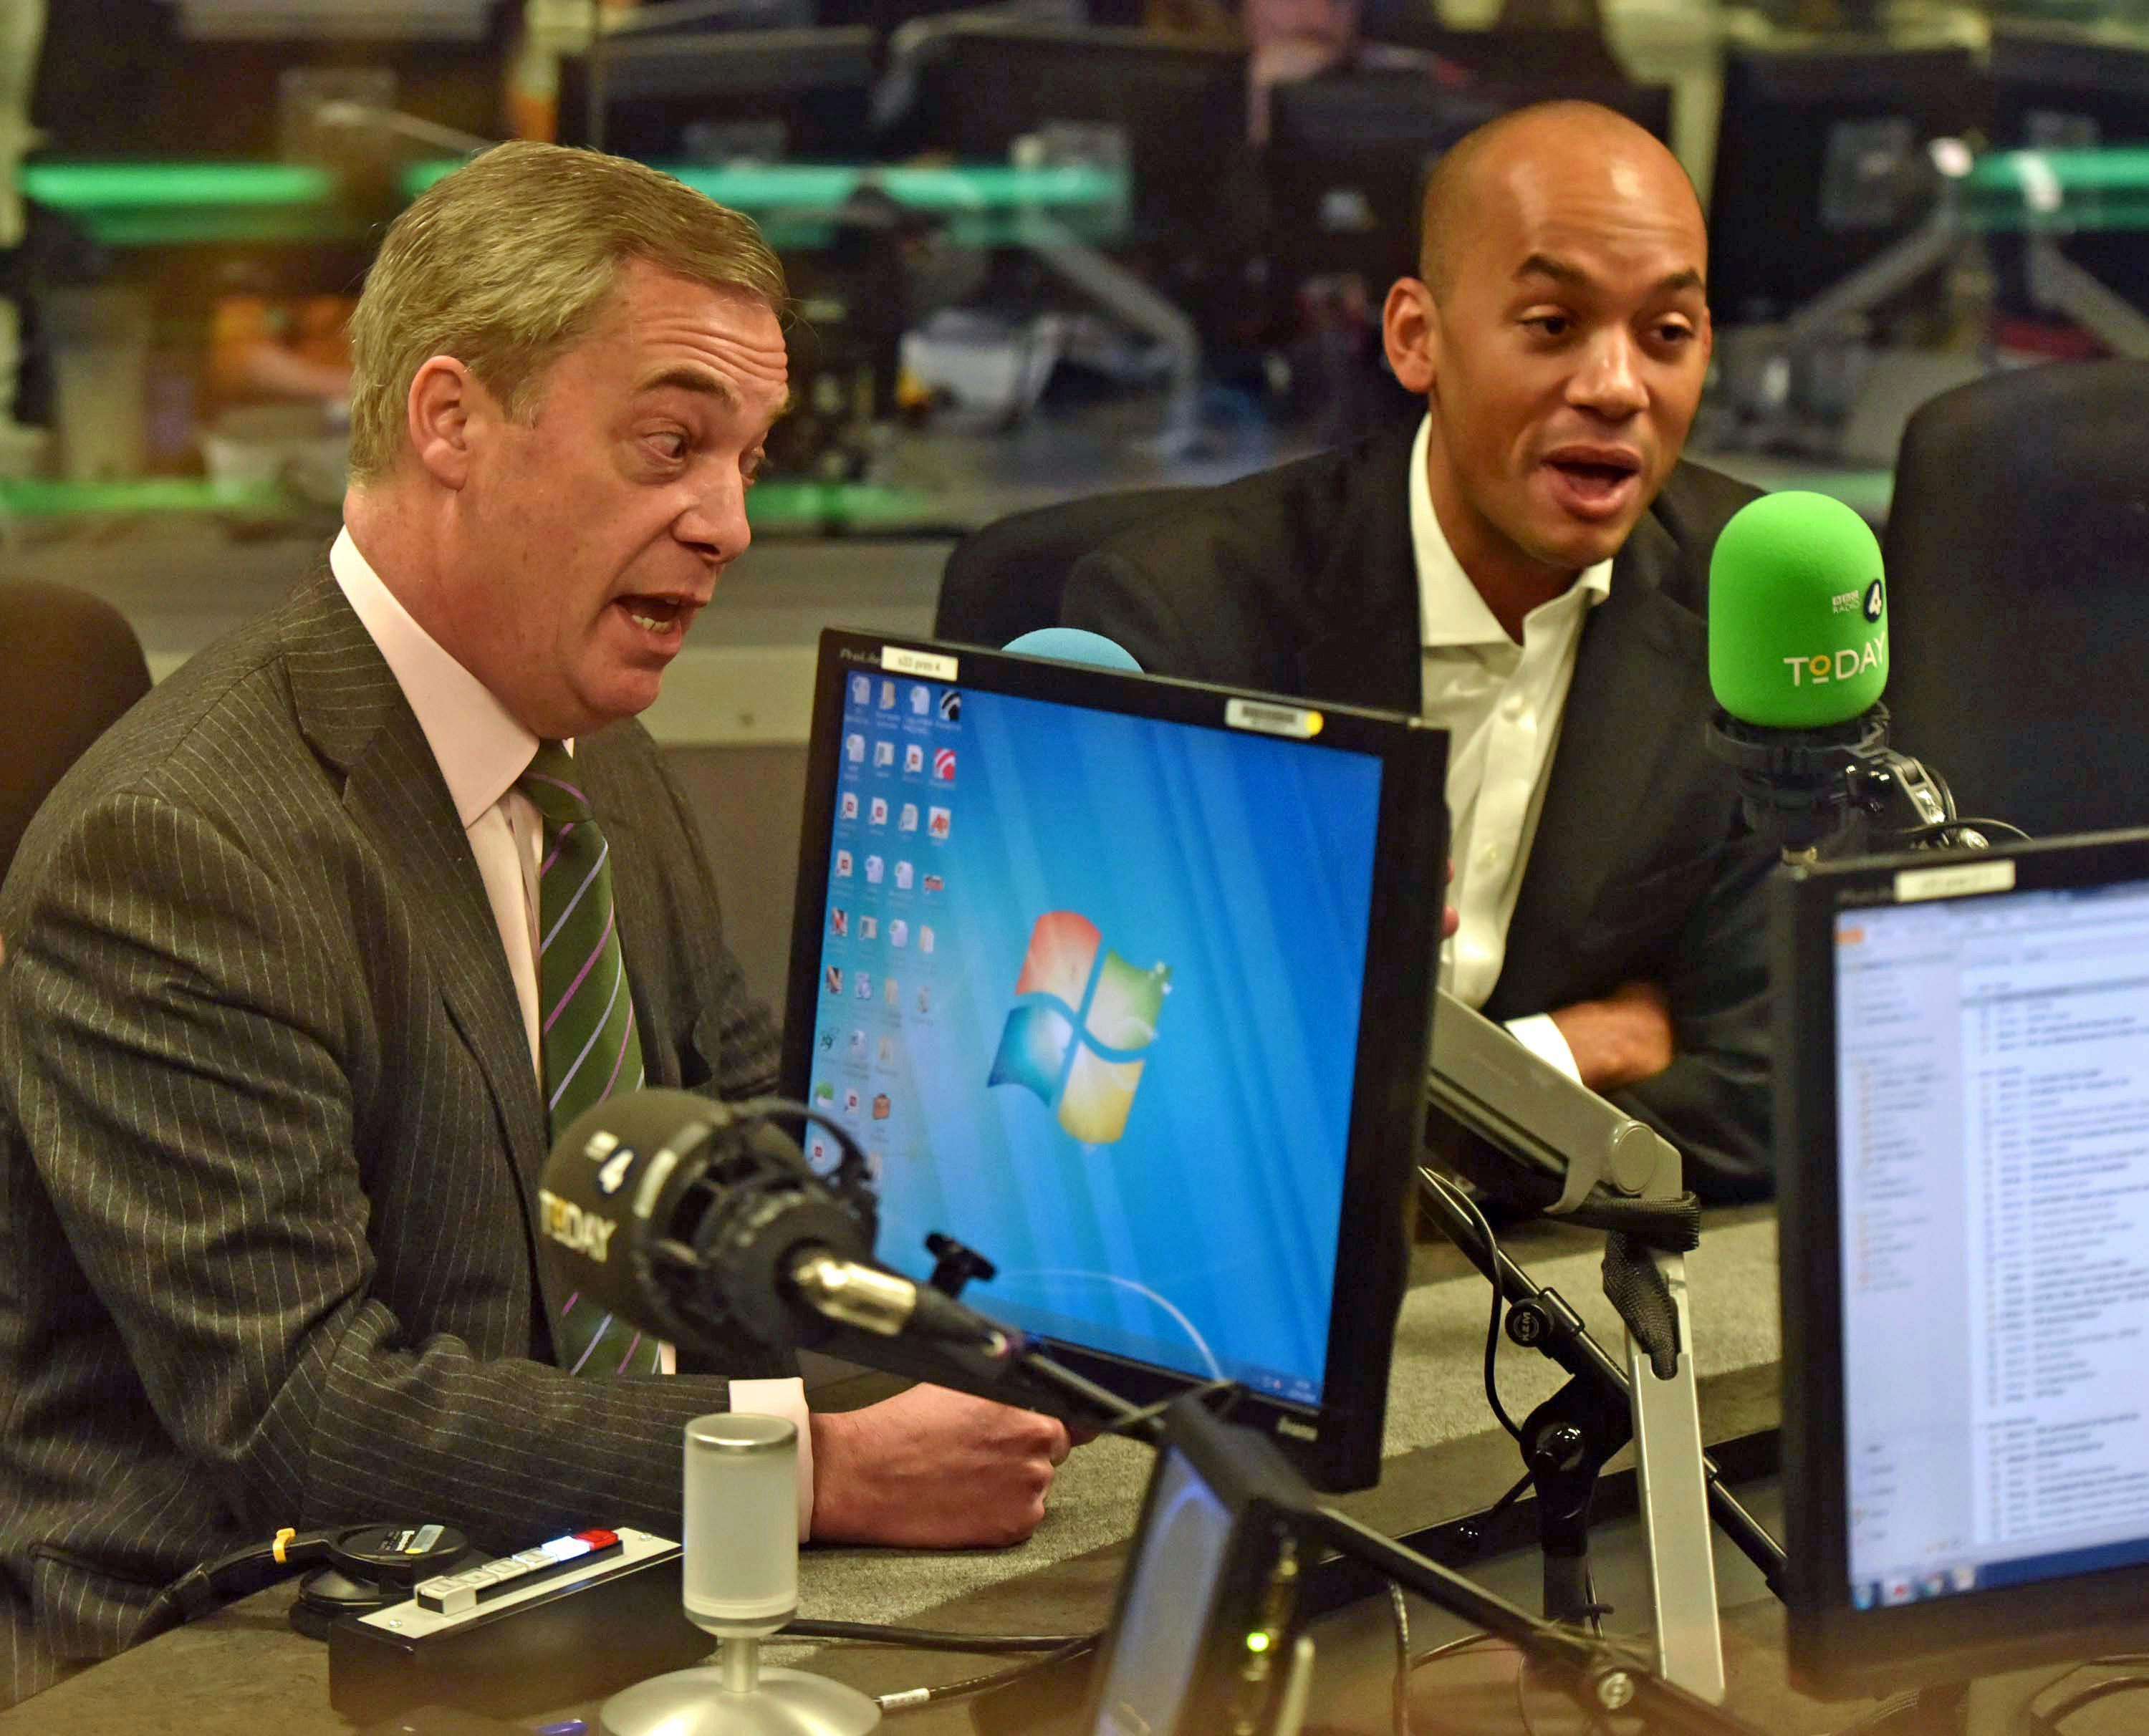 Nigel Farage and Chuka Umunna in explosive row over Donald Trump's cancelled UK visit